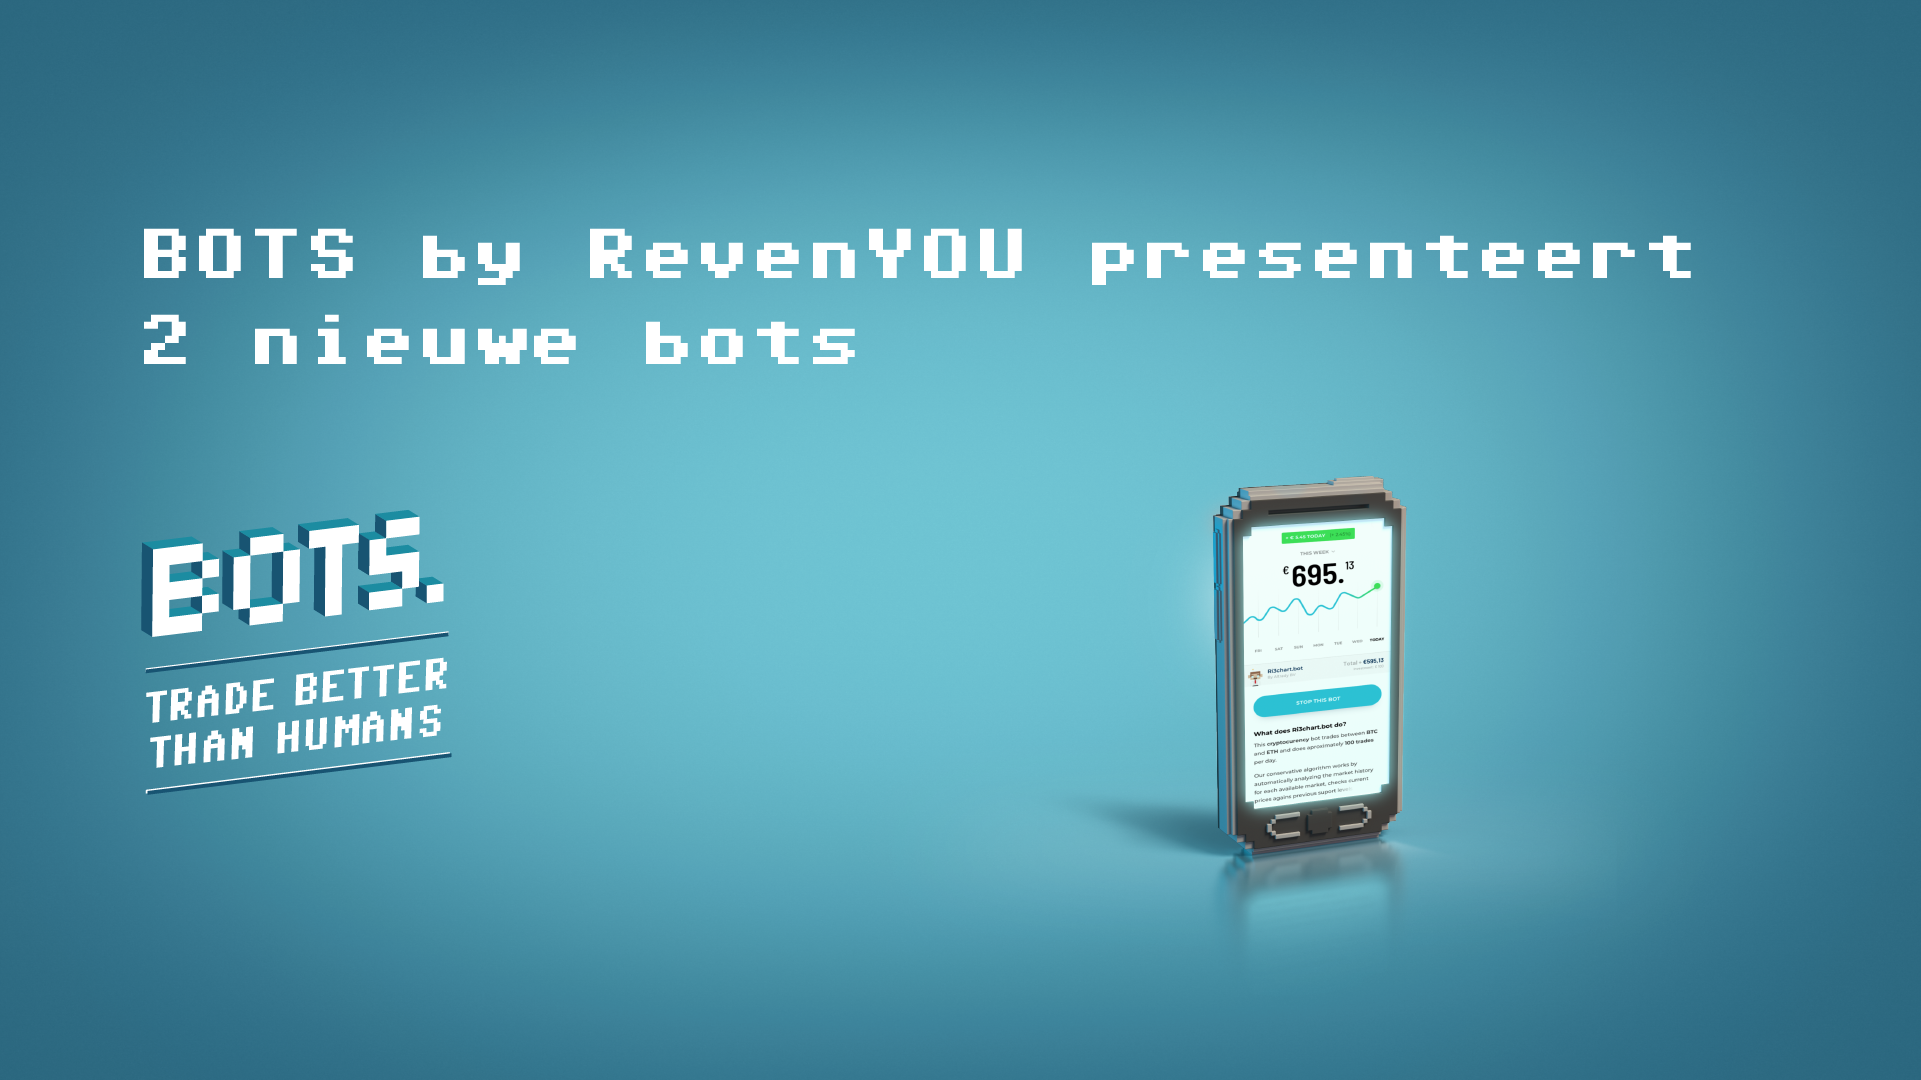 BOTS by RevenYOU | 2 new bots